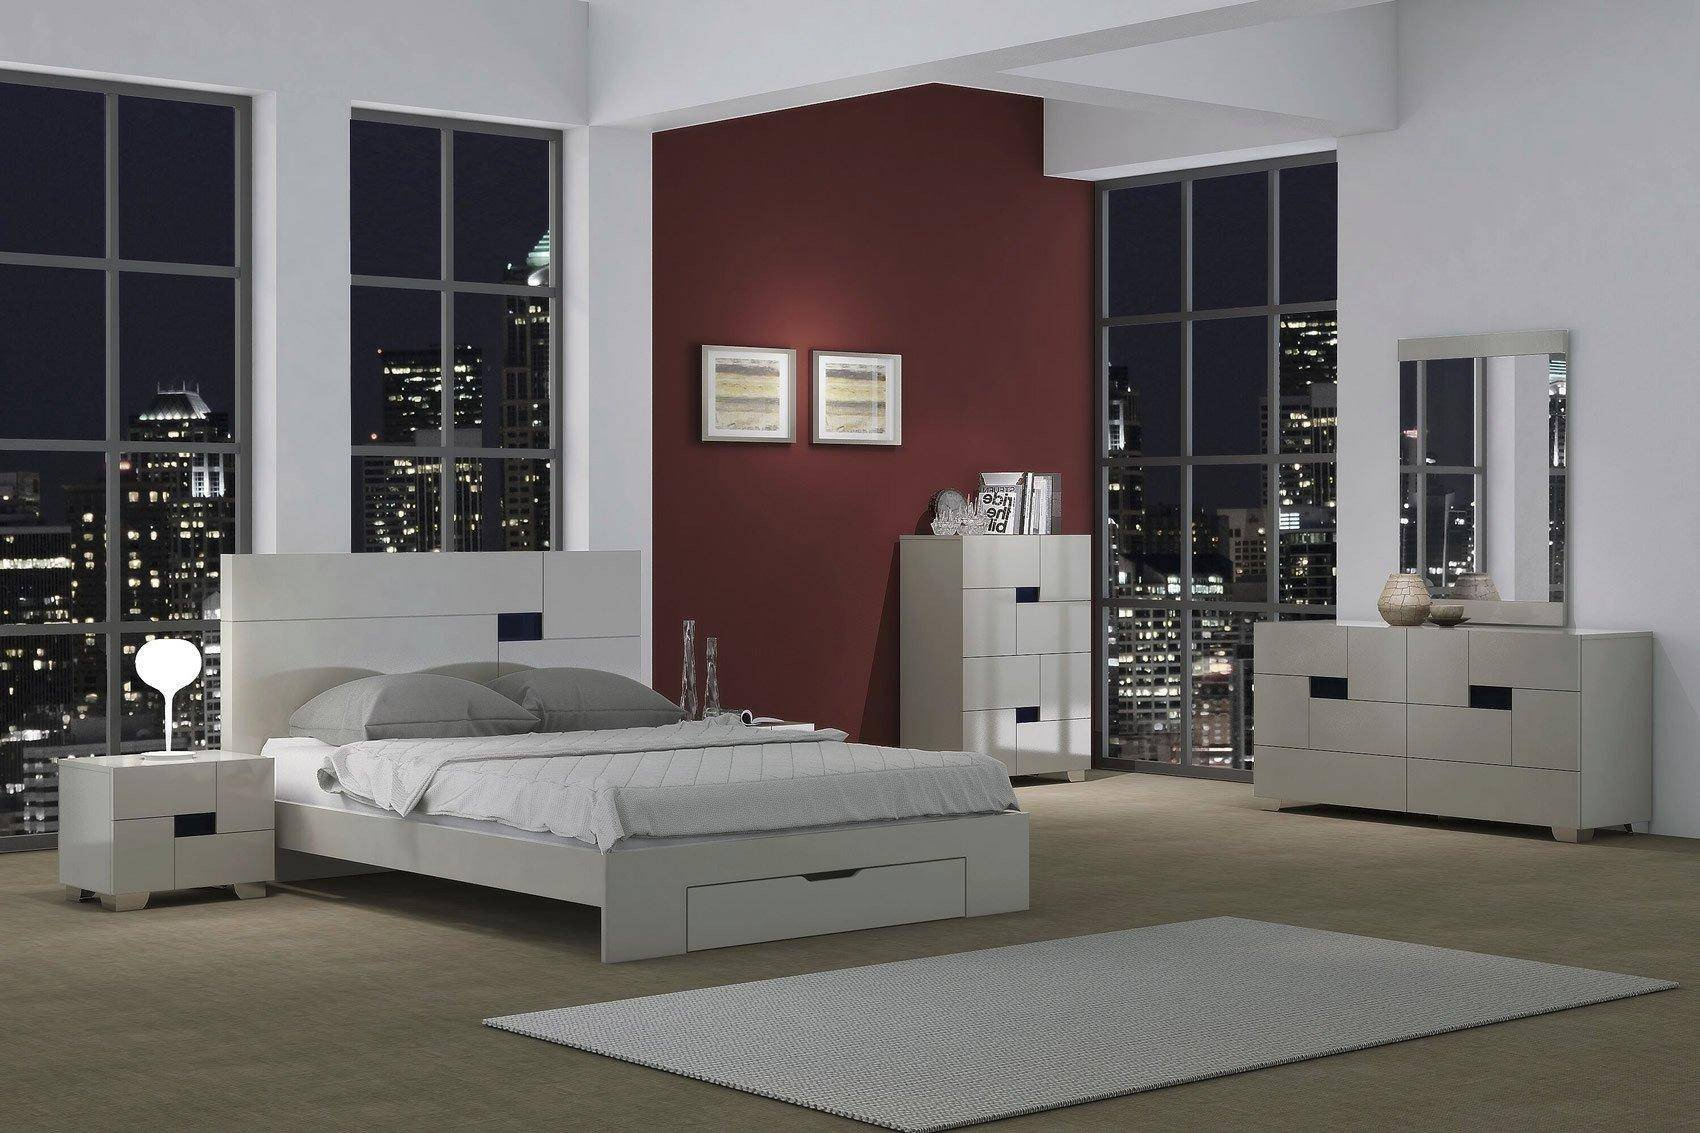 Platform Bedroom Set Queen Inspirational Contemporary Light Gray Lacquer Storage Queen Bedroom Set